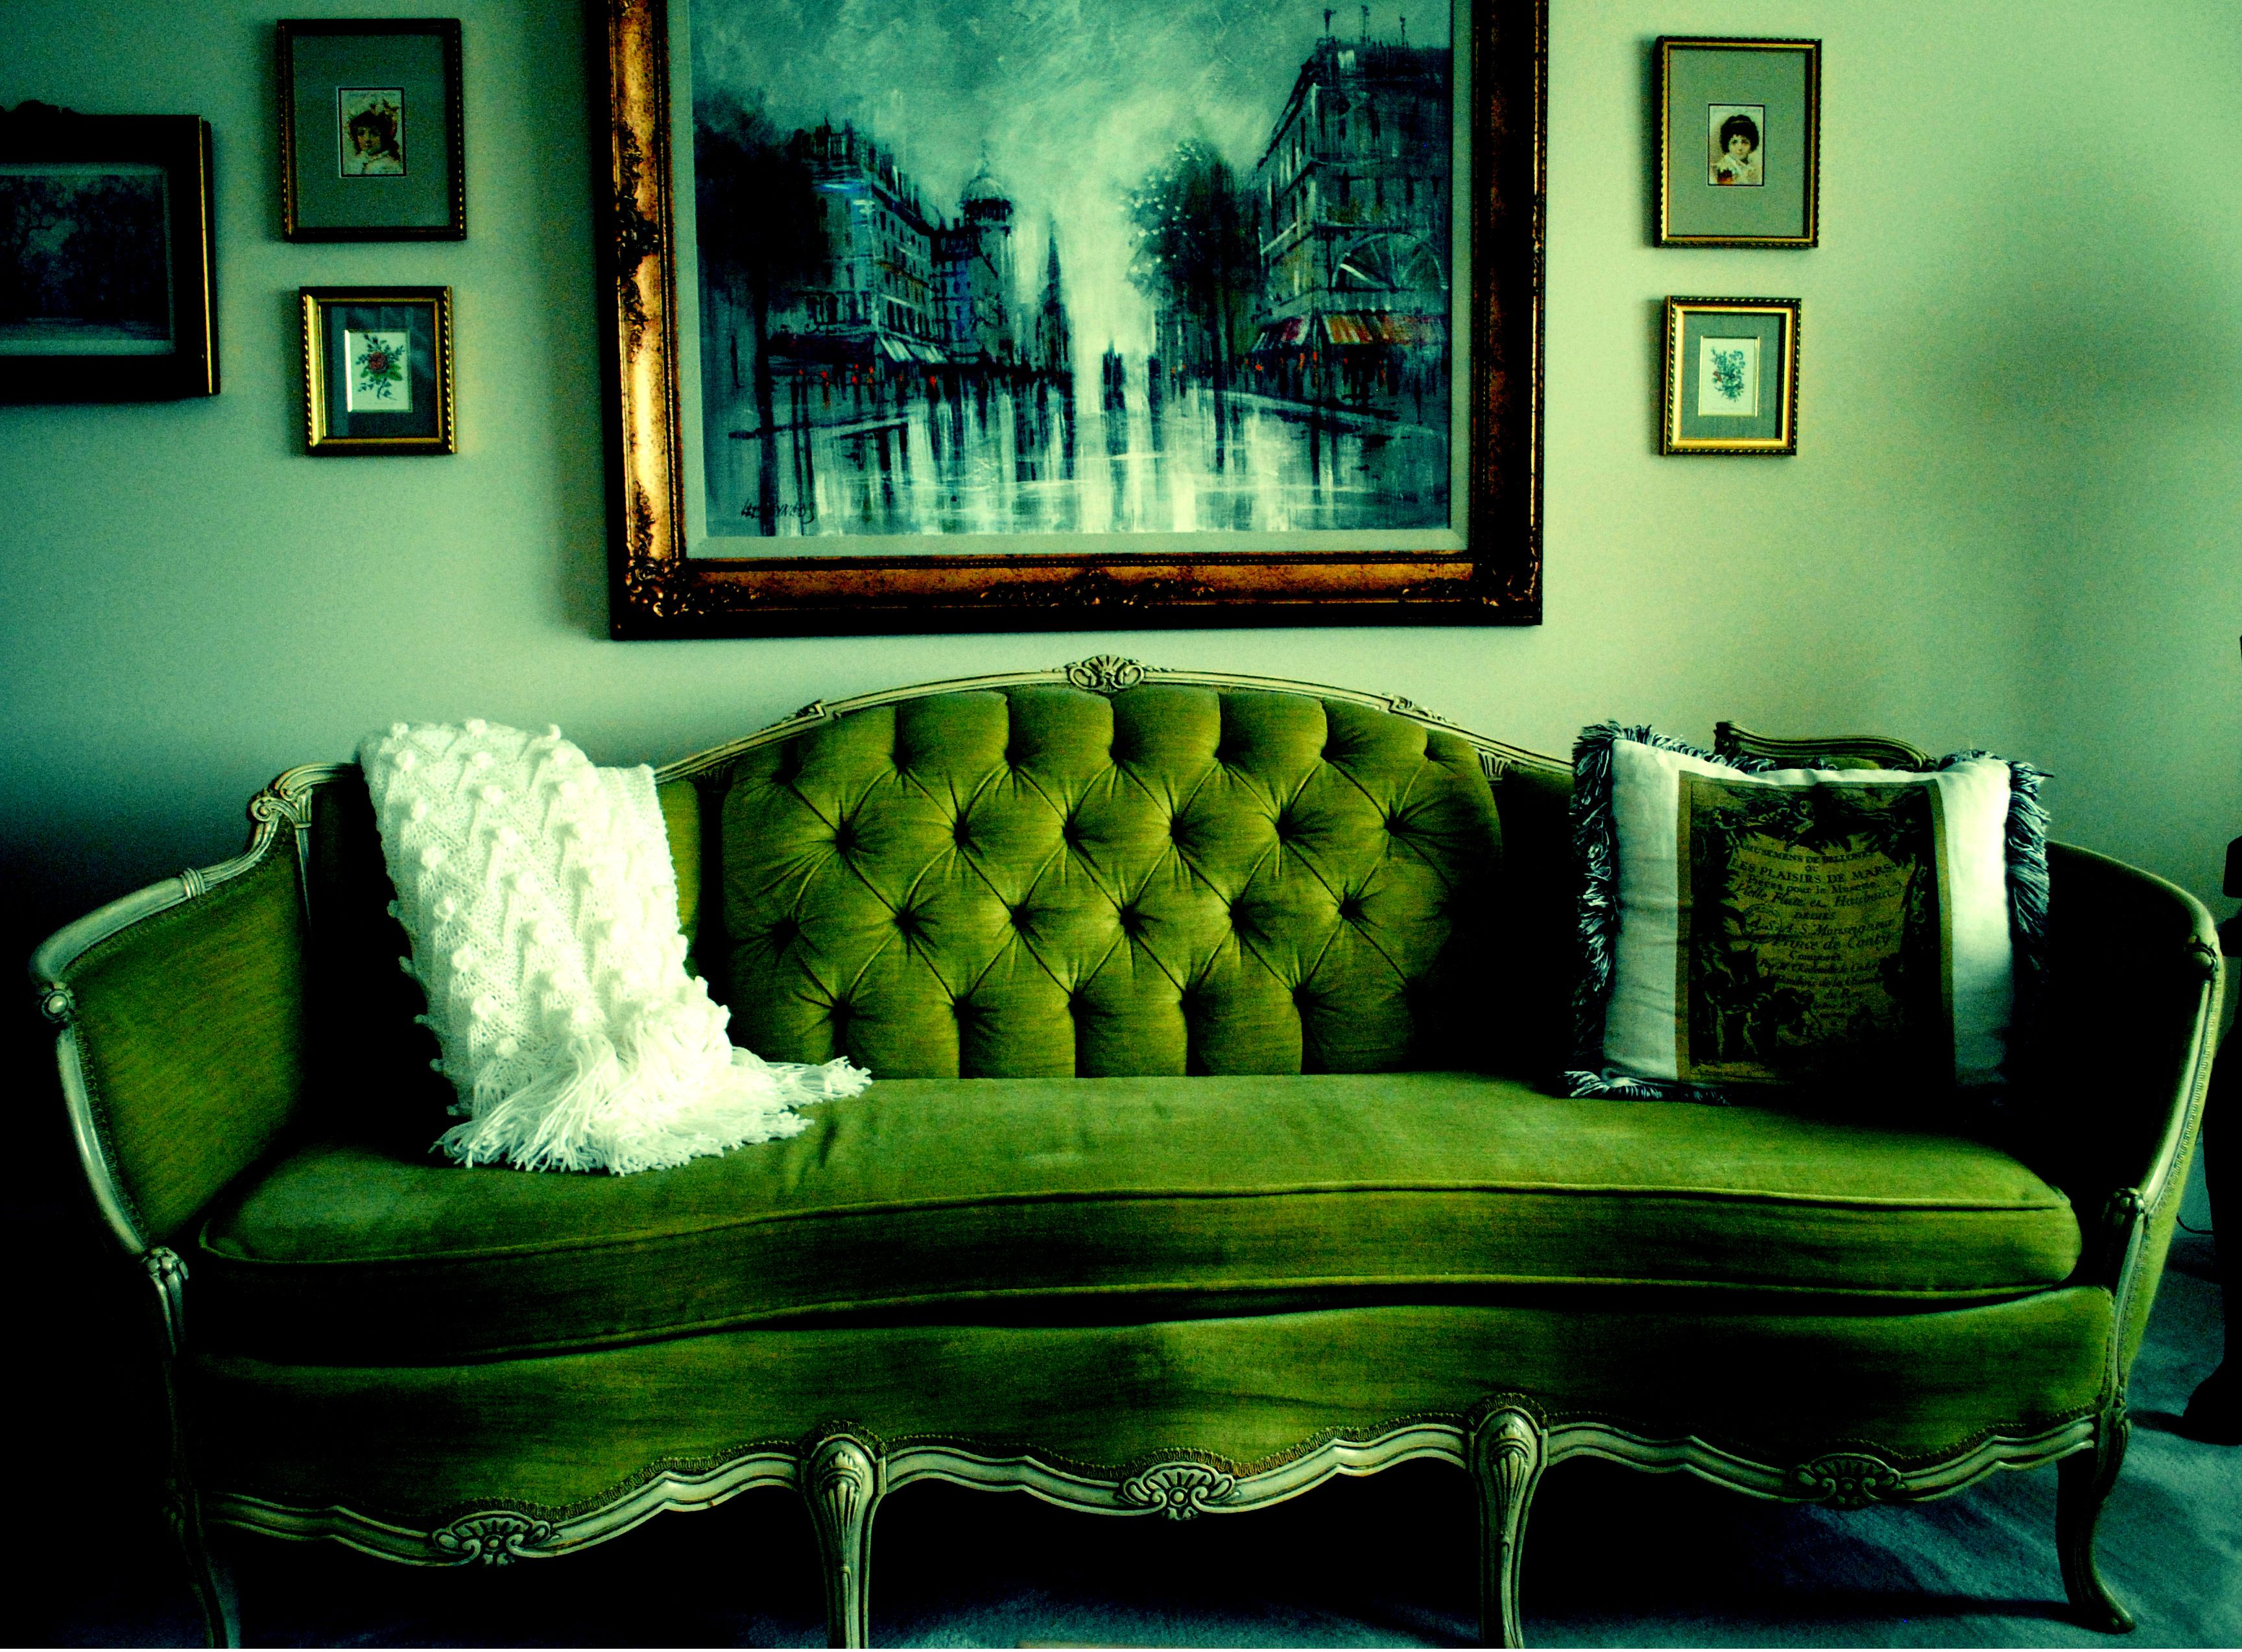 Green Vintage Couch Photo By Alexis Tedesco Bella42781 Yahoo Com Vintage Couch Living Room Decor Green Velvet Sofa